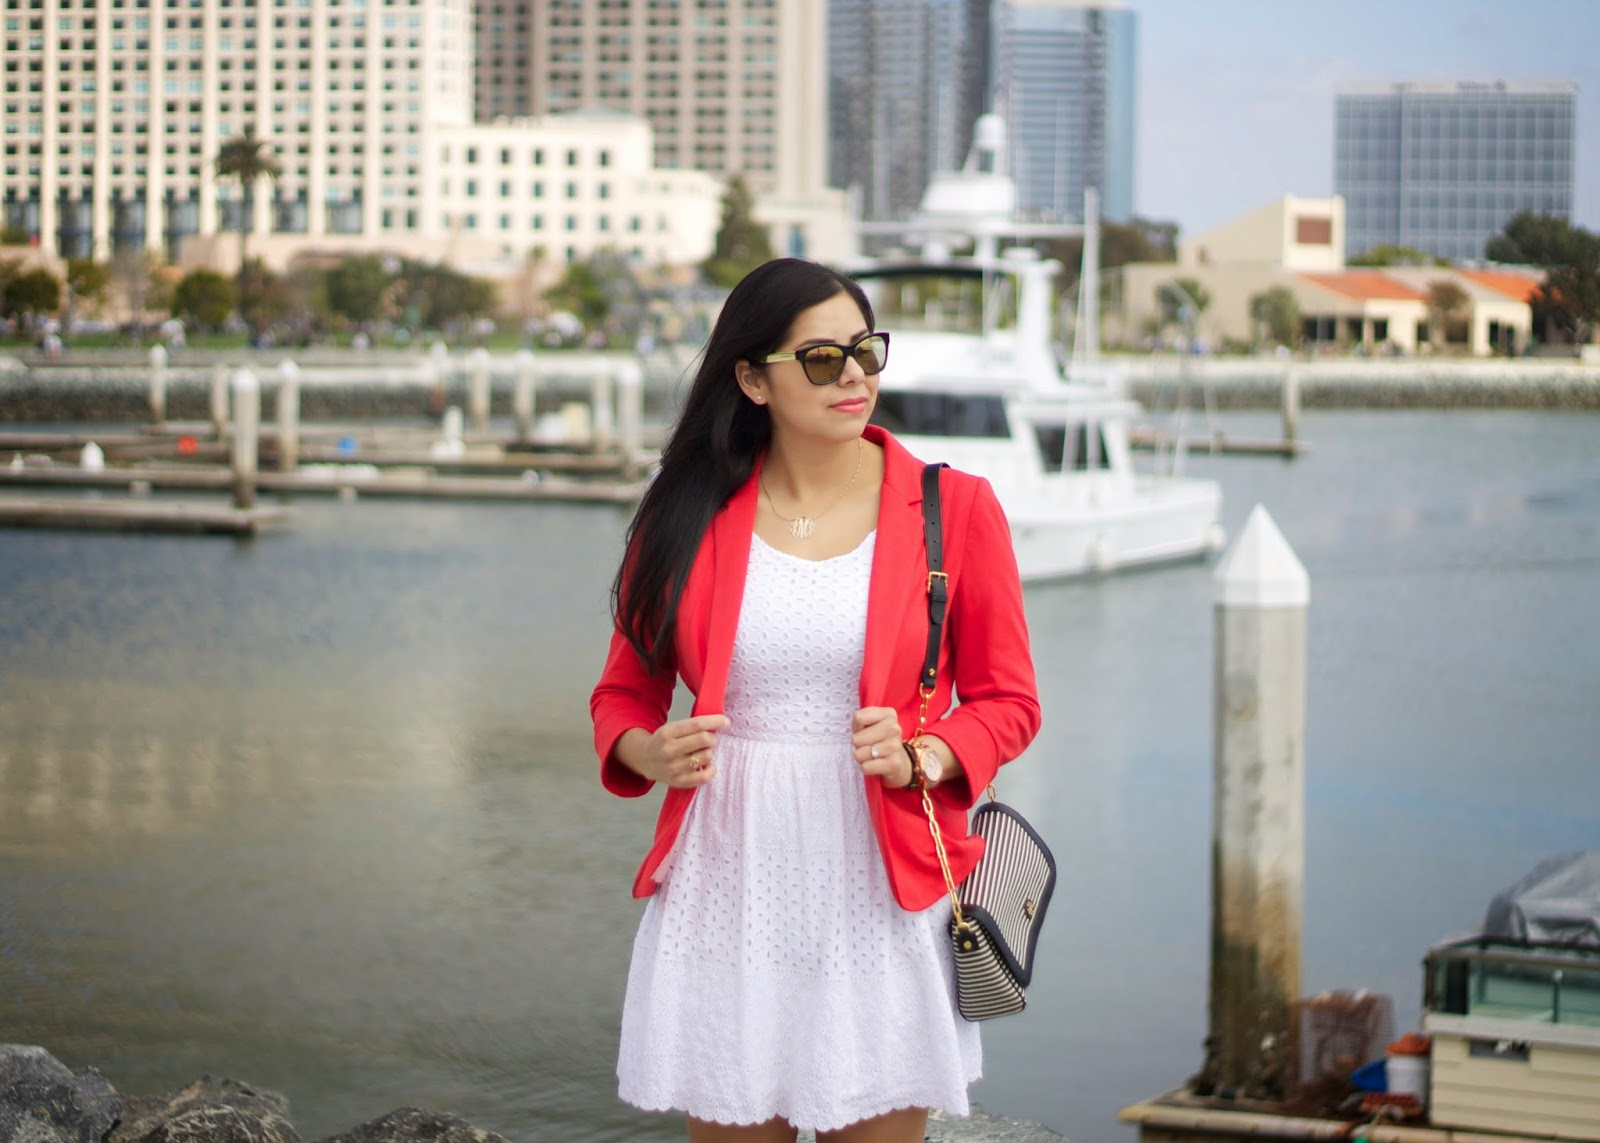 Outfit by the San Diego bay, OOTD in San Diego, White eyelet dress, white fit and flare dress